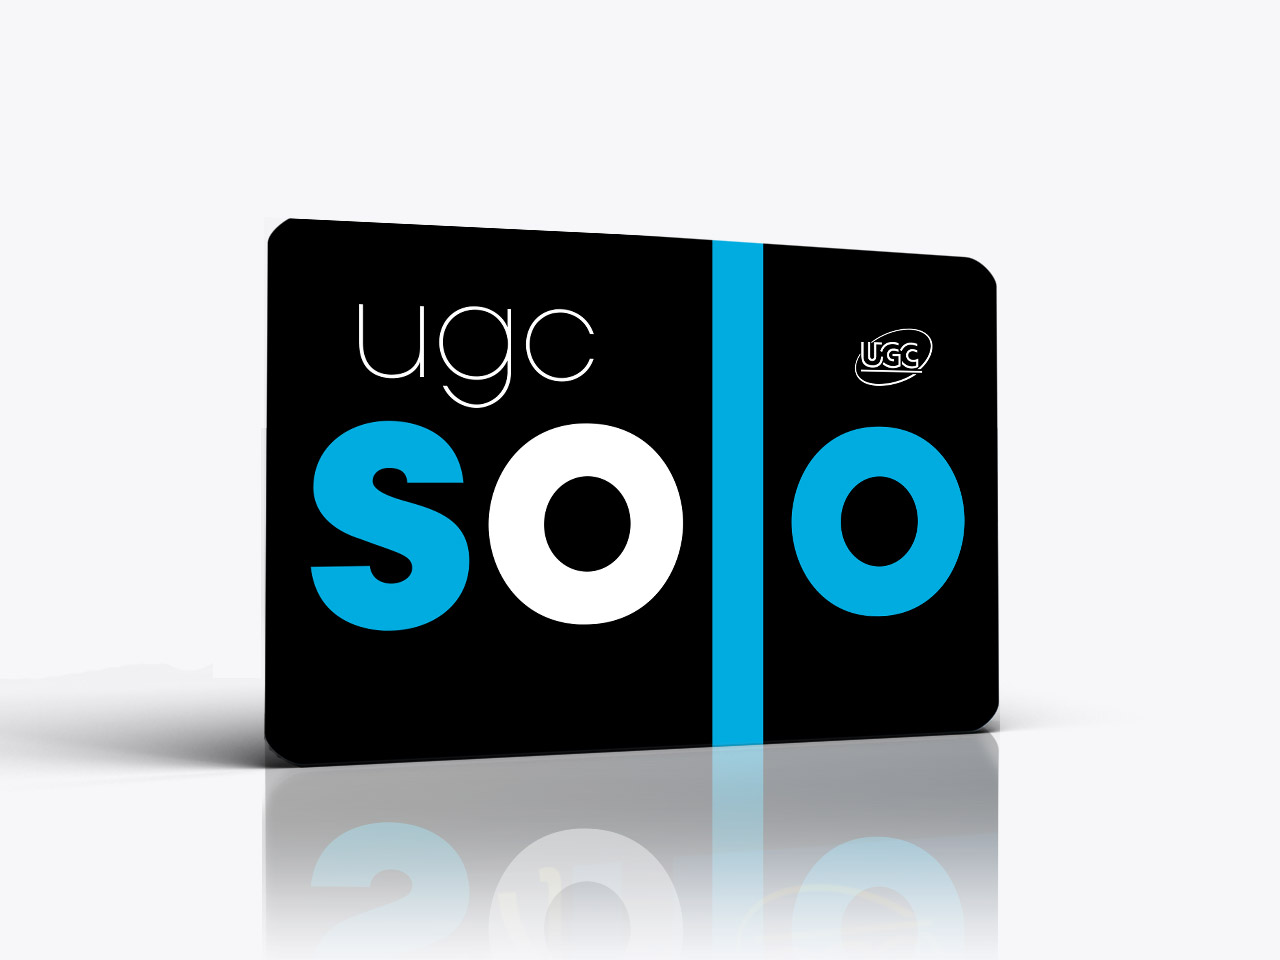 Carte Ugc Europe.Ugc Carte Unlimited Carte Ugc Carte Ugc Solo